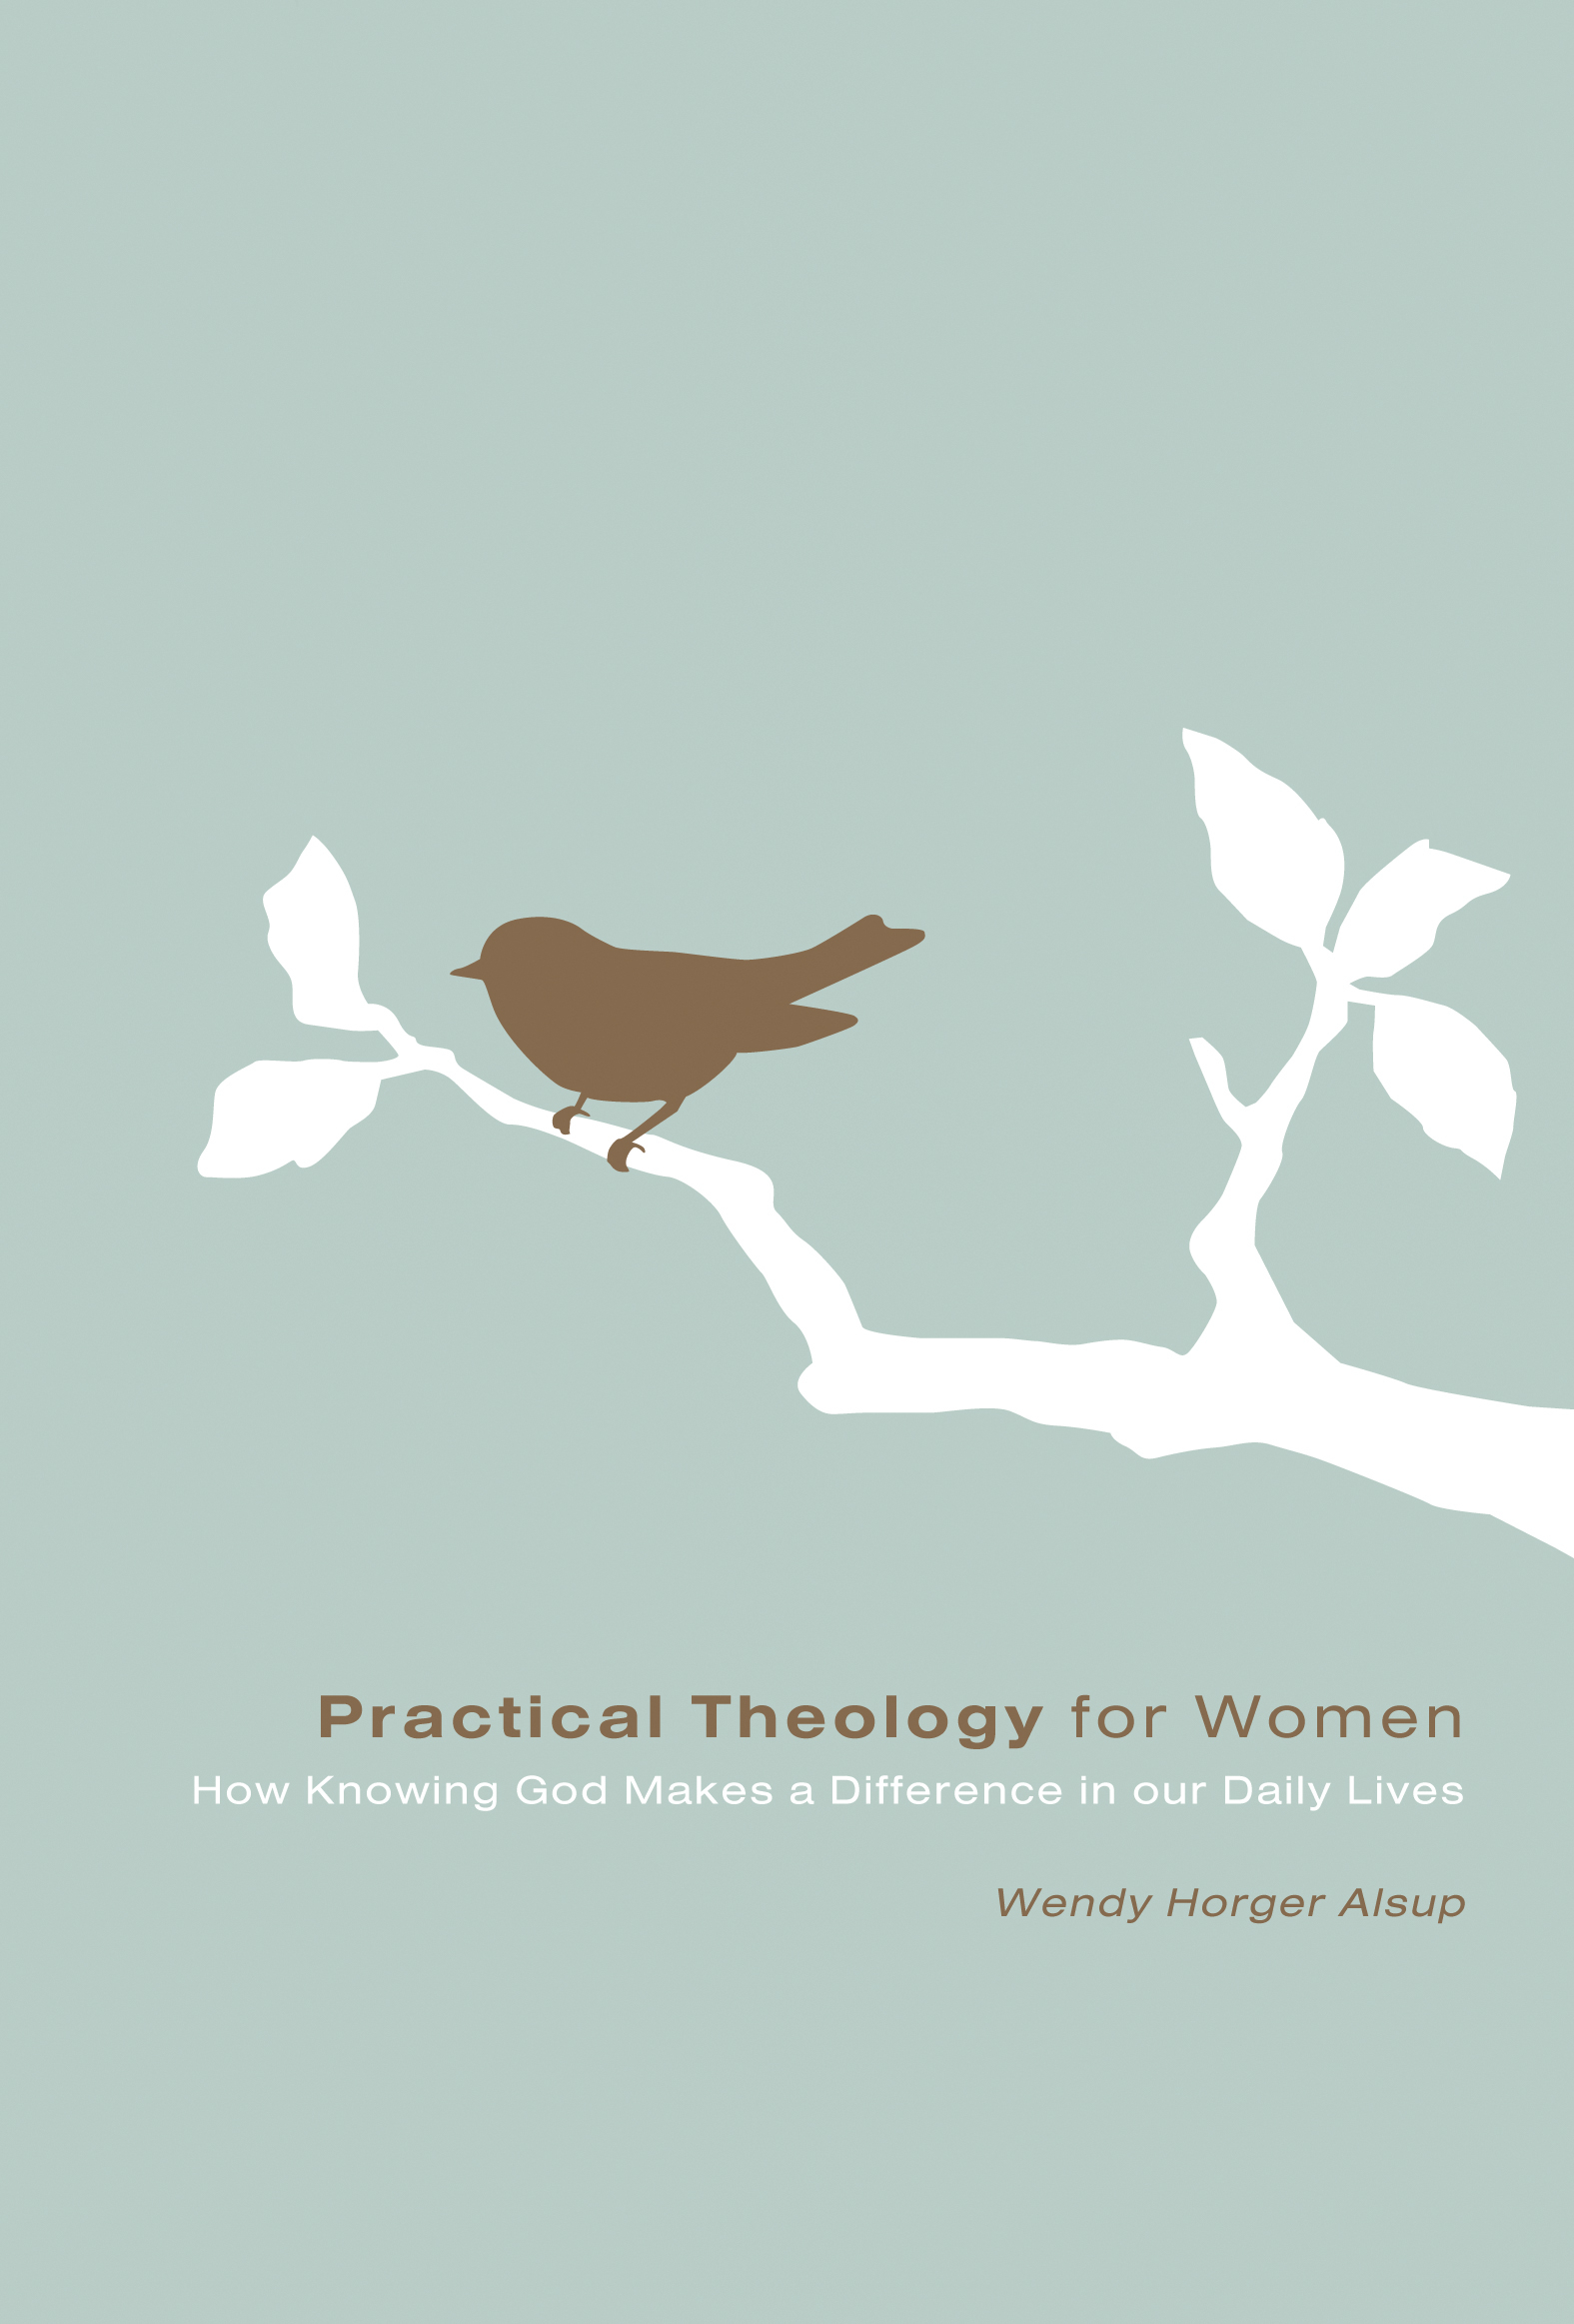 Practical Theology for Women How Knowing God Makes a Difference in Our Daily Lives